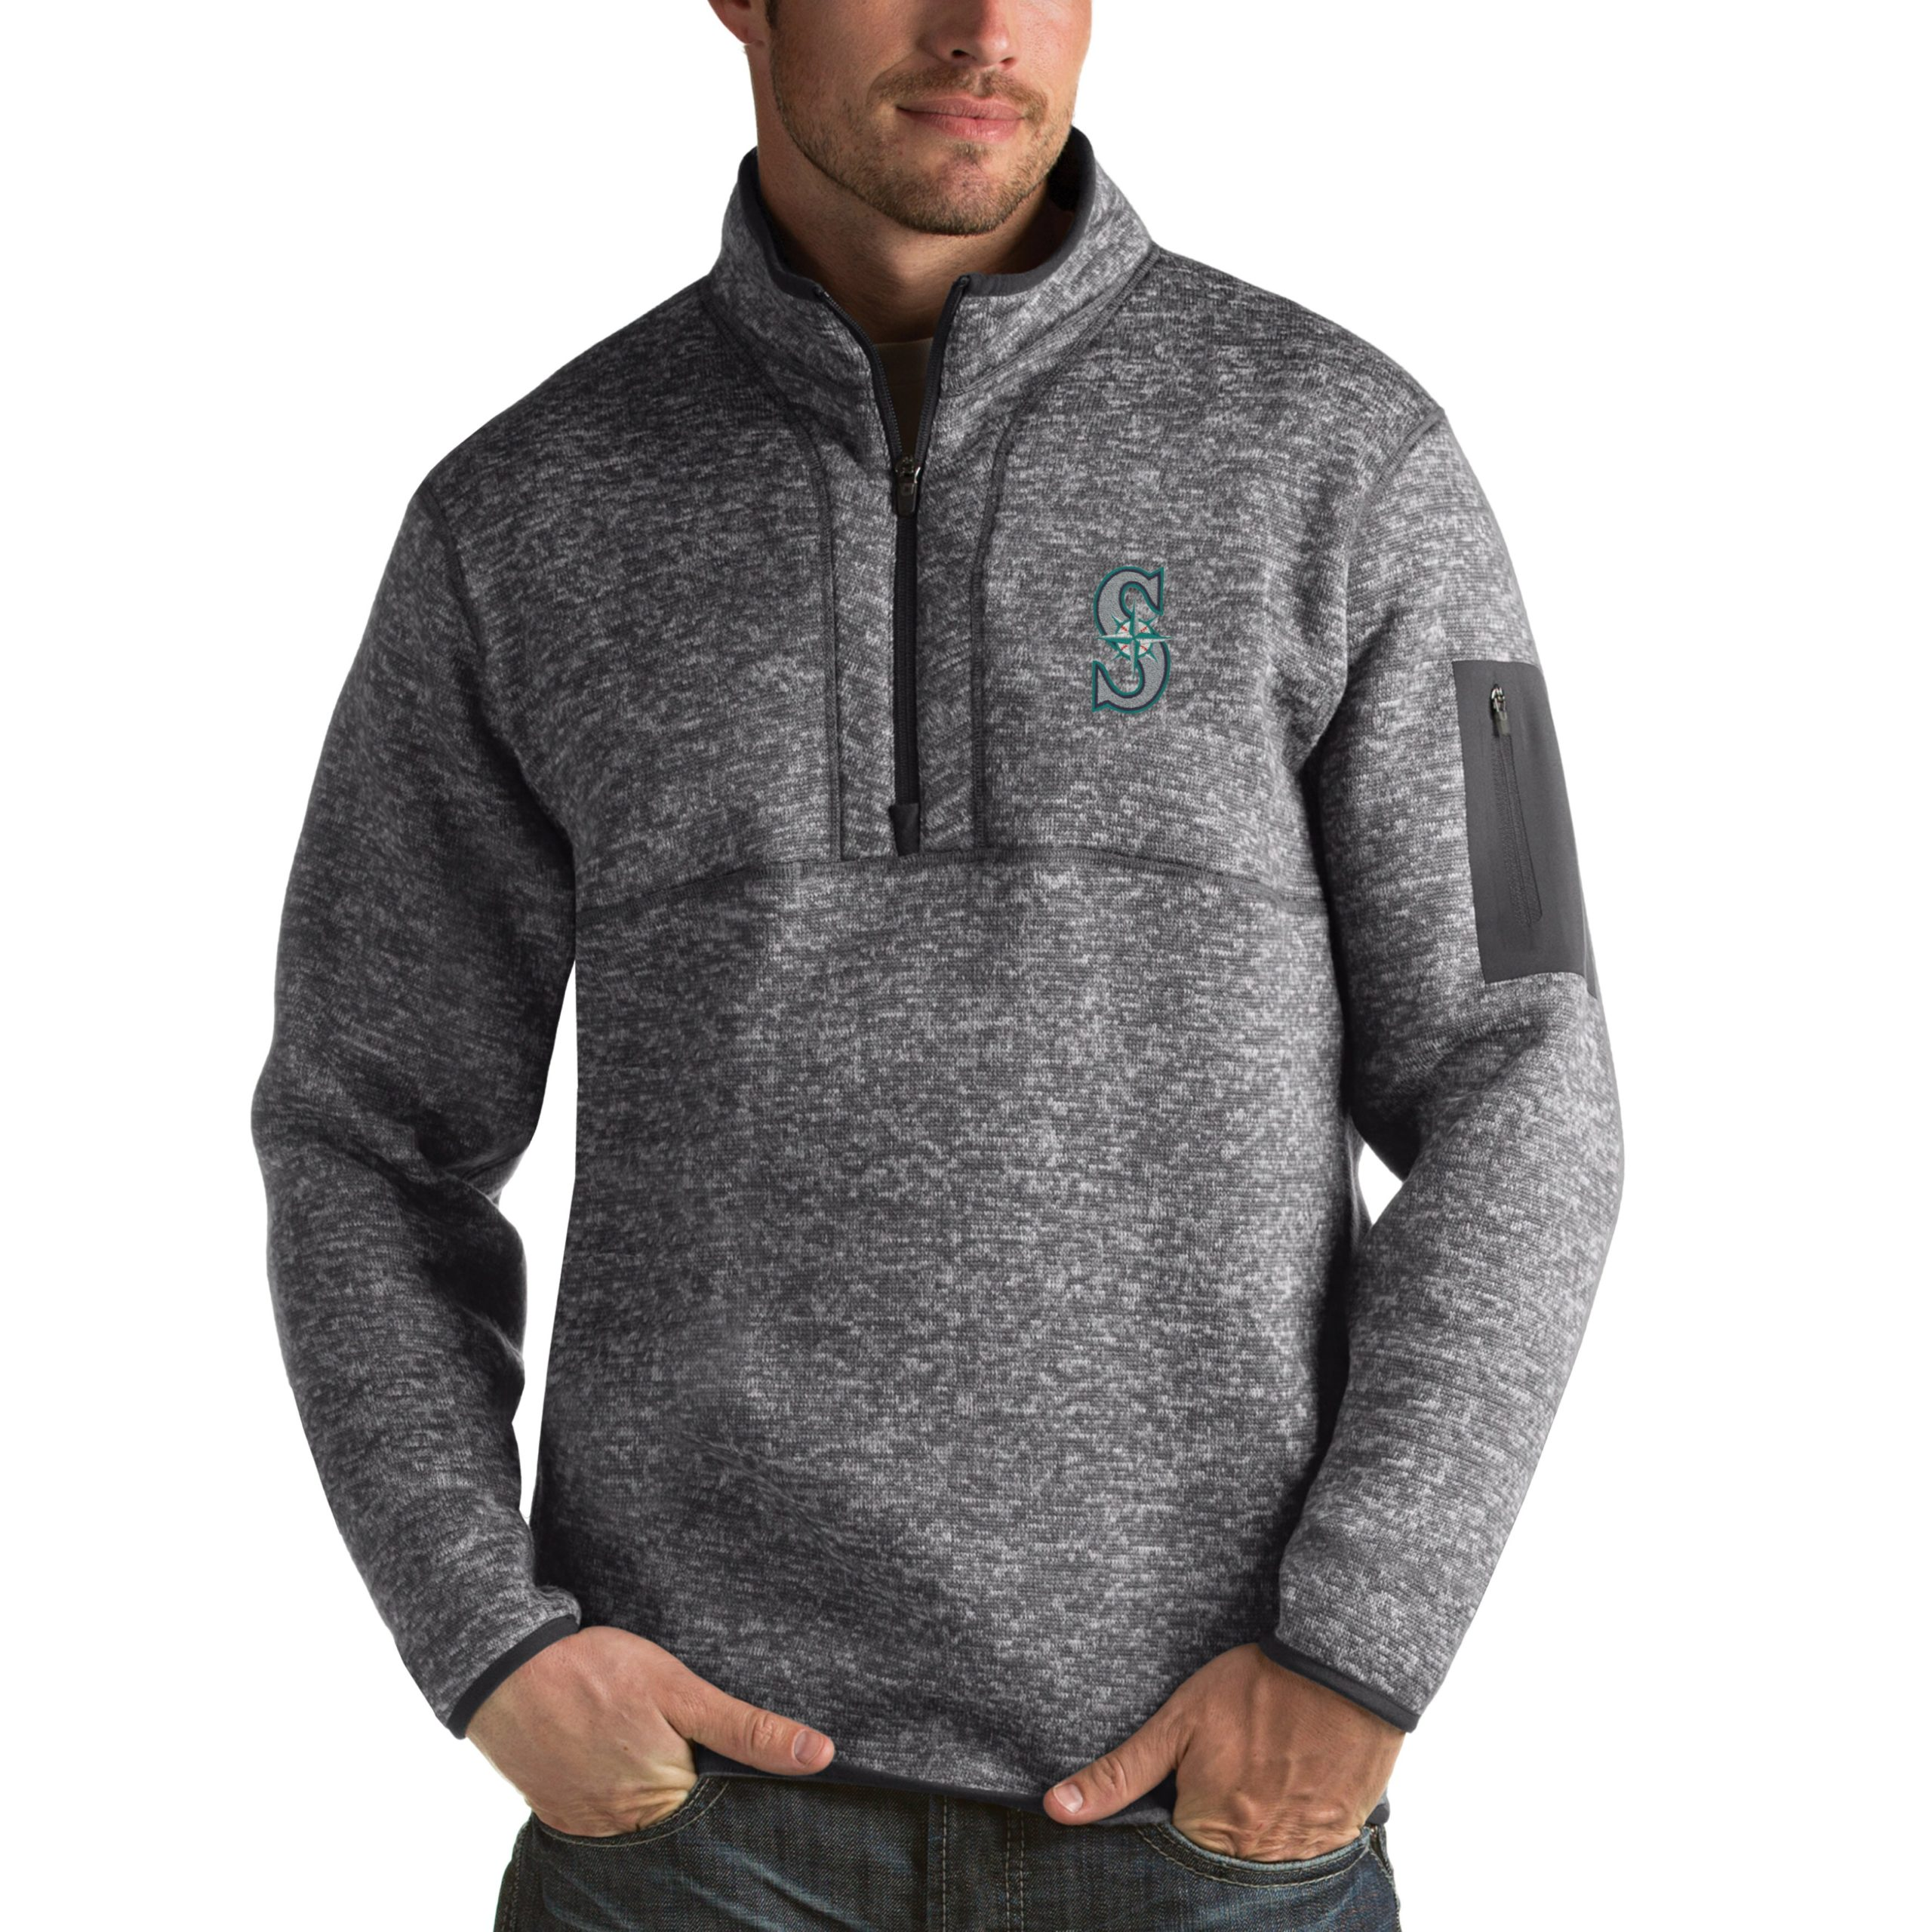 Seattle Mariners Antigua Fortune Half-Zip Sweater - Heathered Charcoal